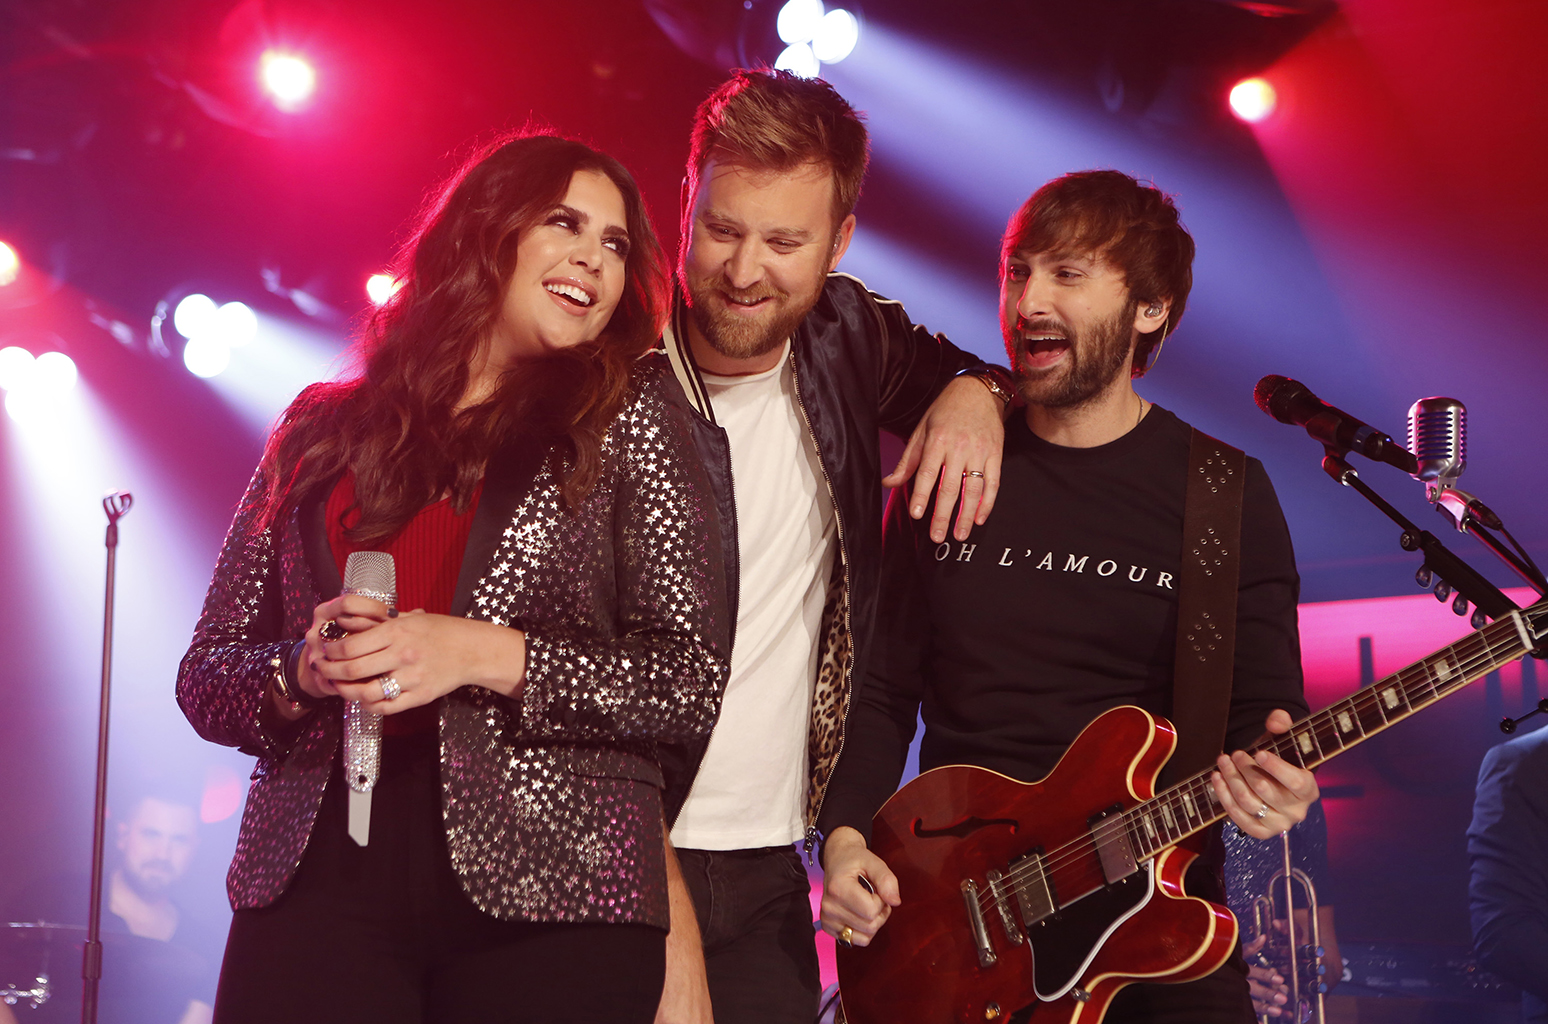 Lady Antebellum, Jake Owen & Maddie and Tae at Veterans United Home Loans Amphitheater